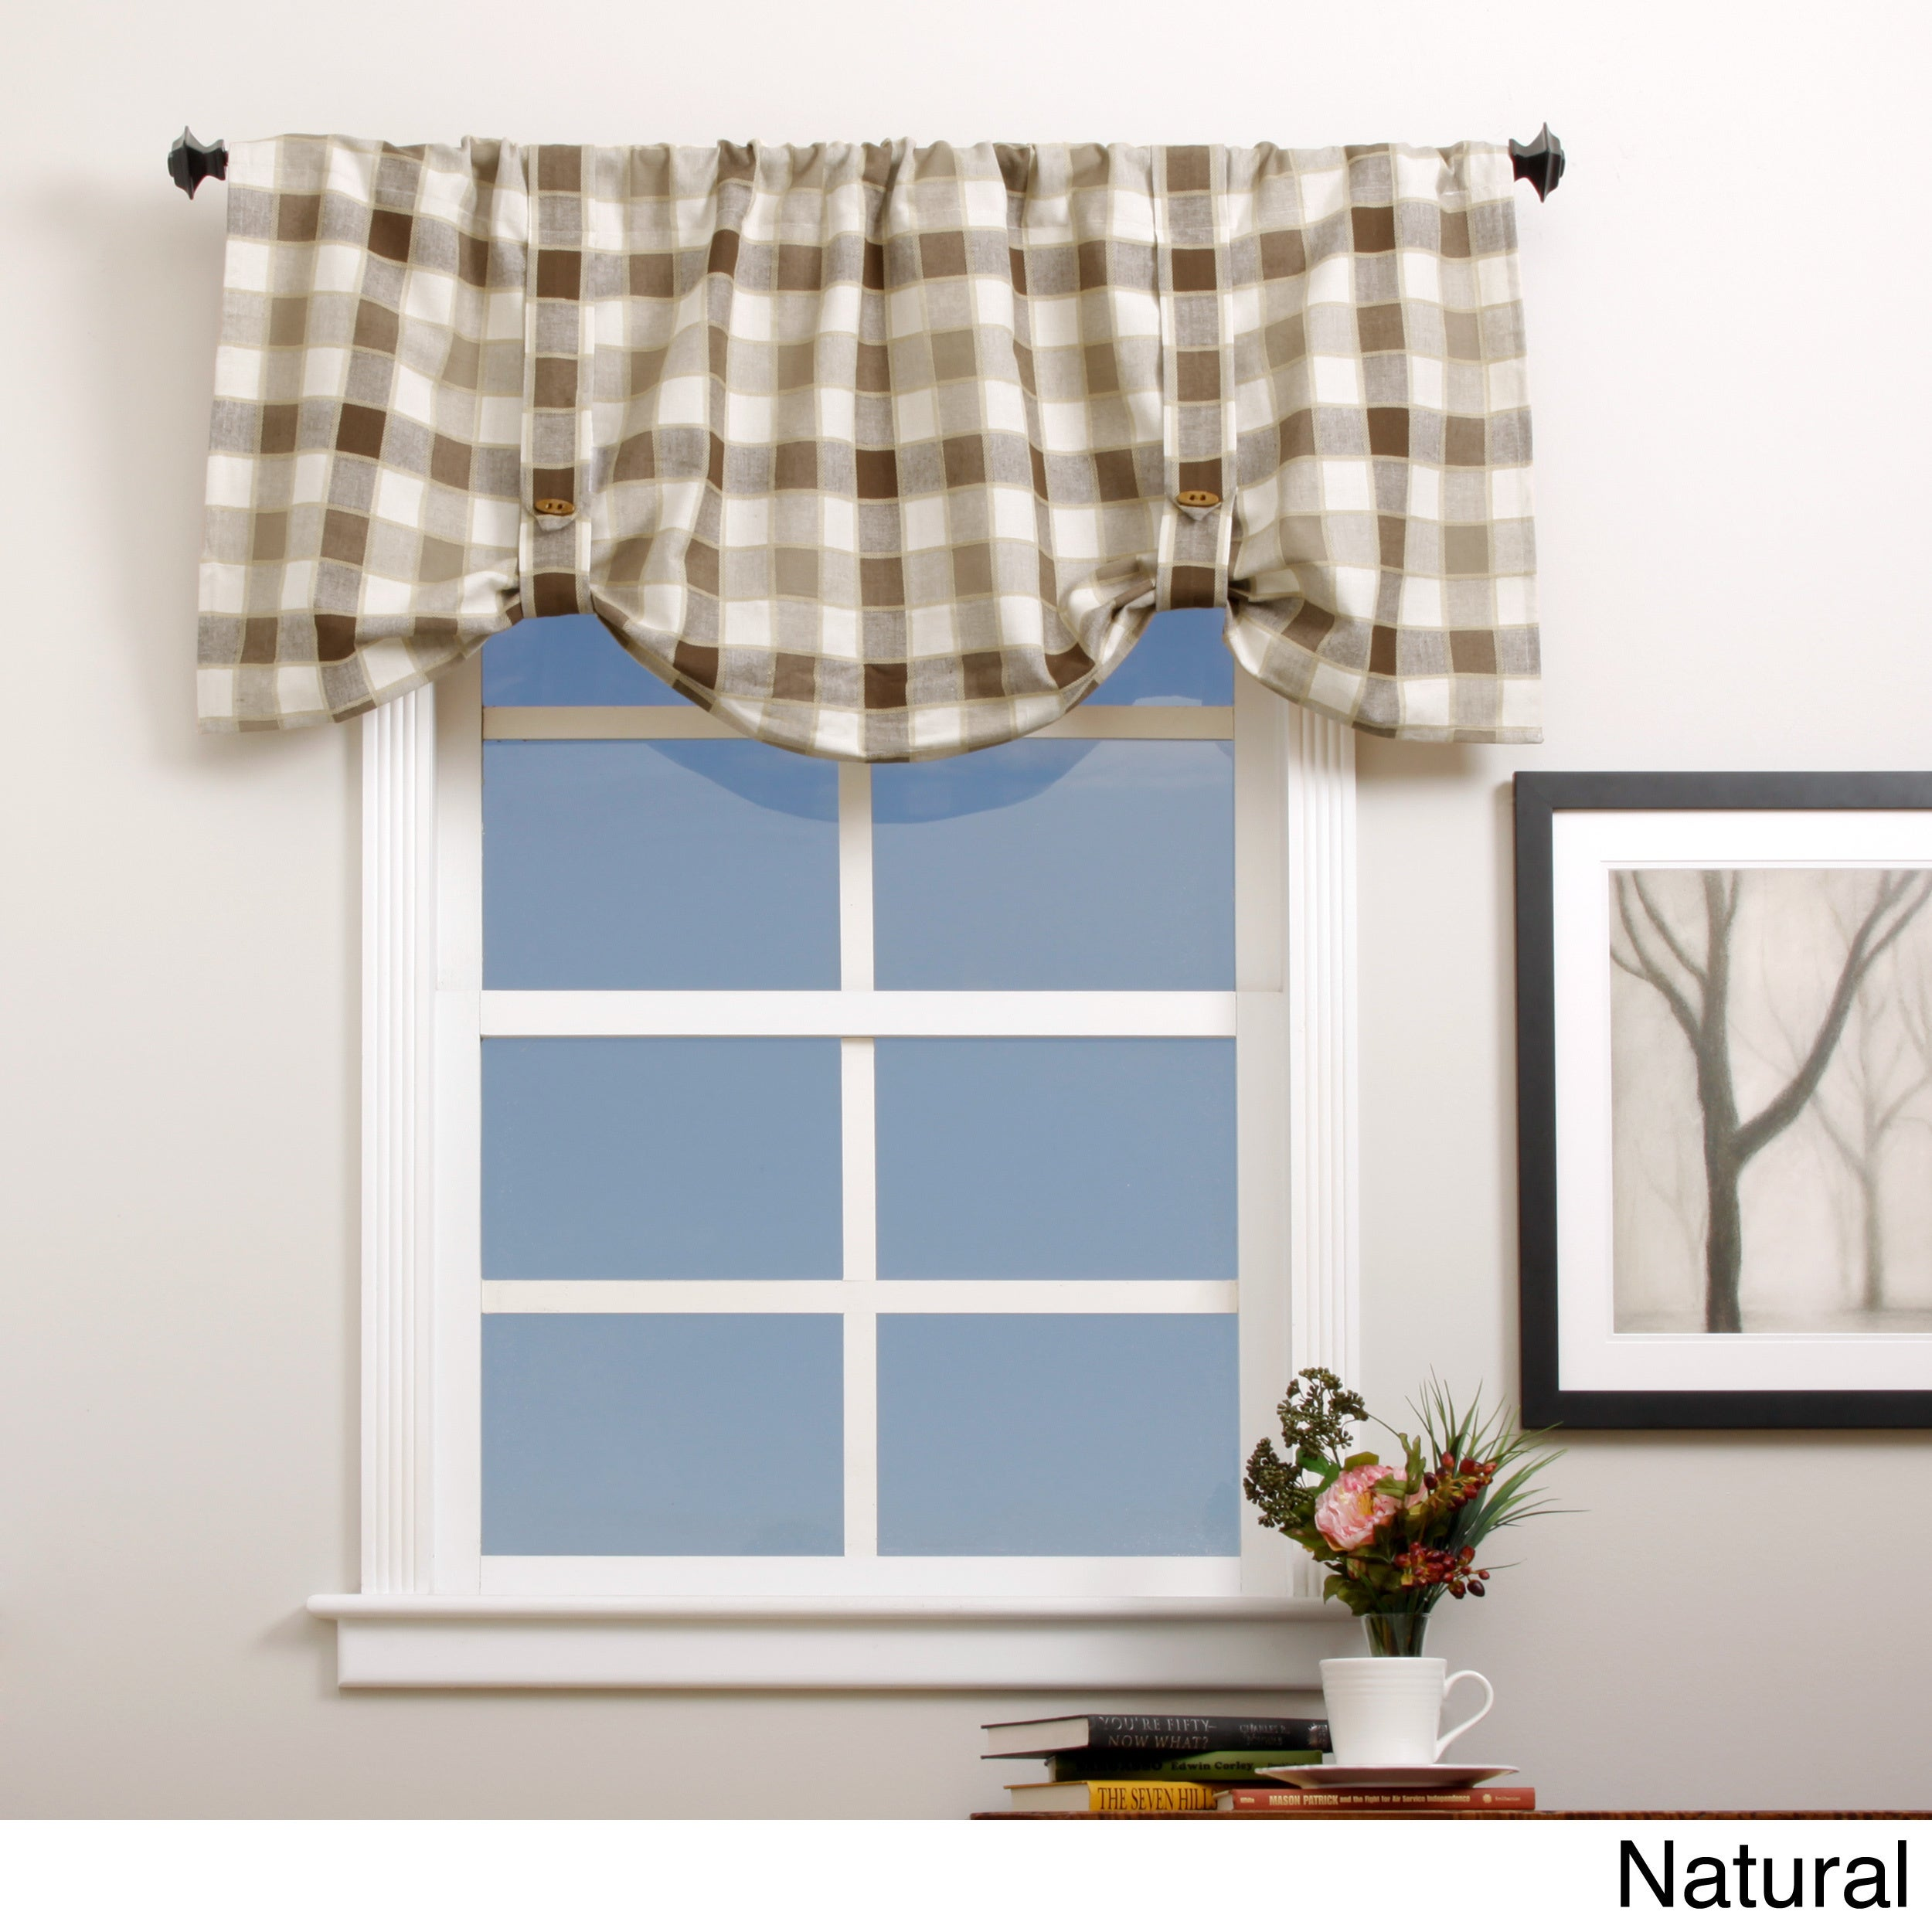 bathroom curtains holly set decoration window bistro treatments walmart for yellow wreath red wall size pretty plaid green valance shades dining curtain ideal white full black ideas at beautiful tie kitchen valances perfect curtins up of and treatment scalloped with a home